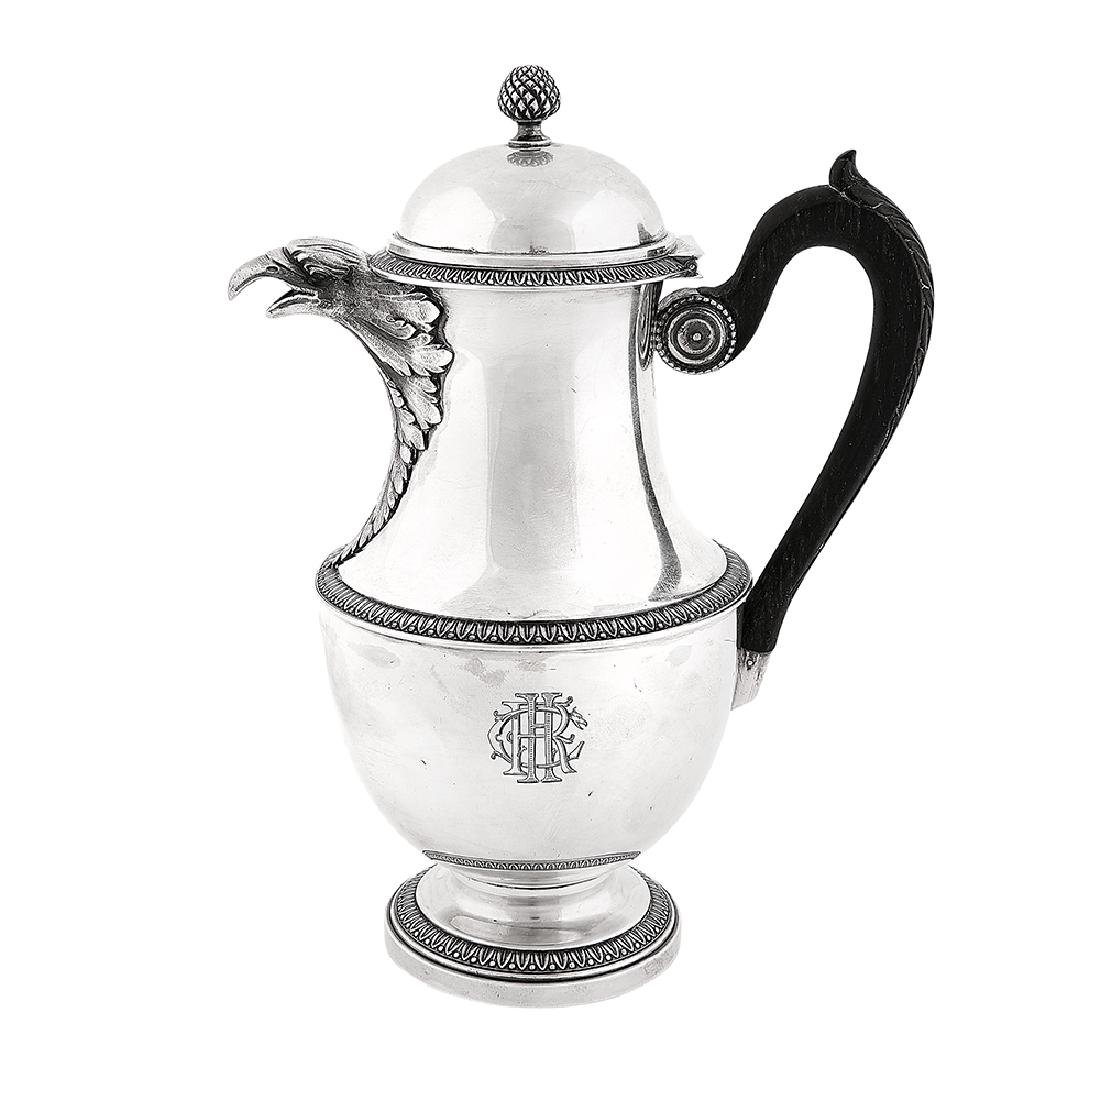 Henri Gauthier bachelor coffee pot